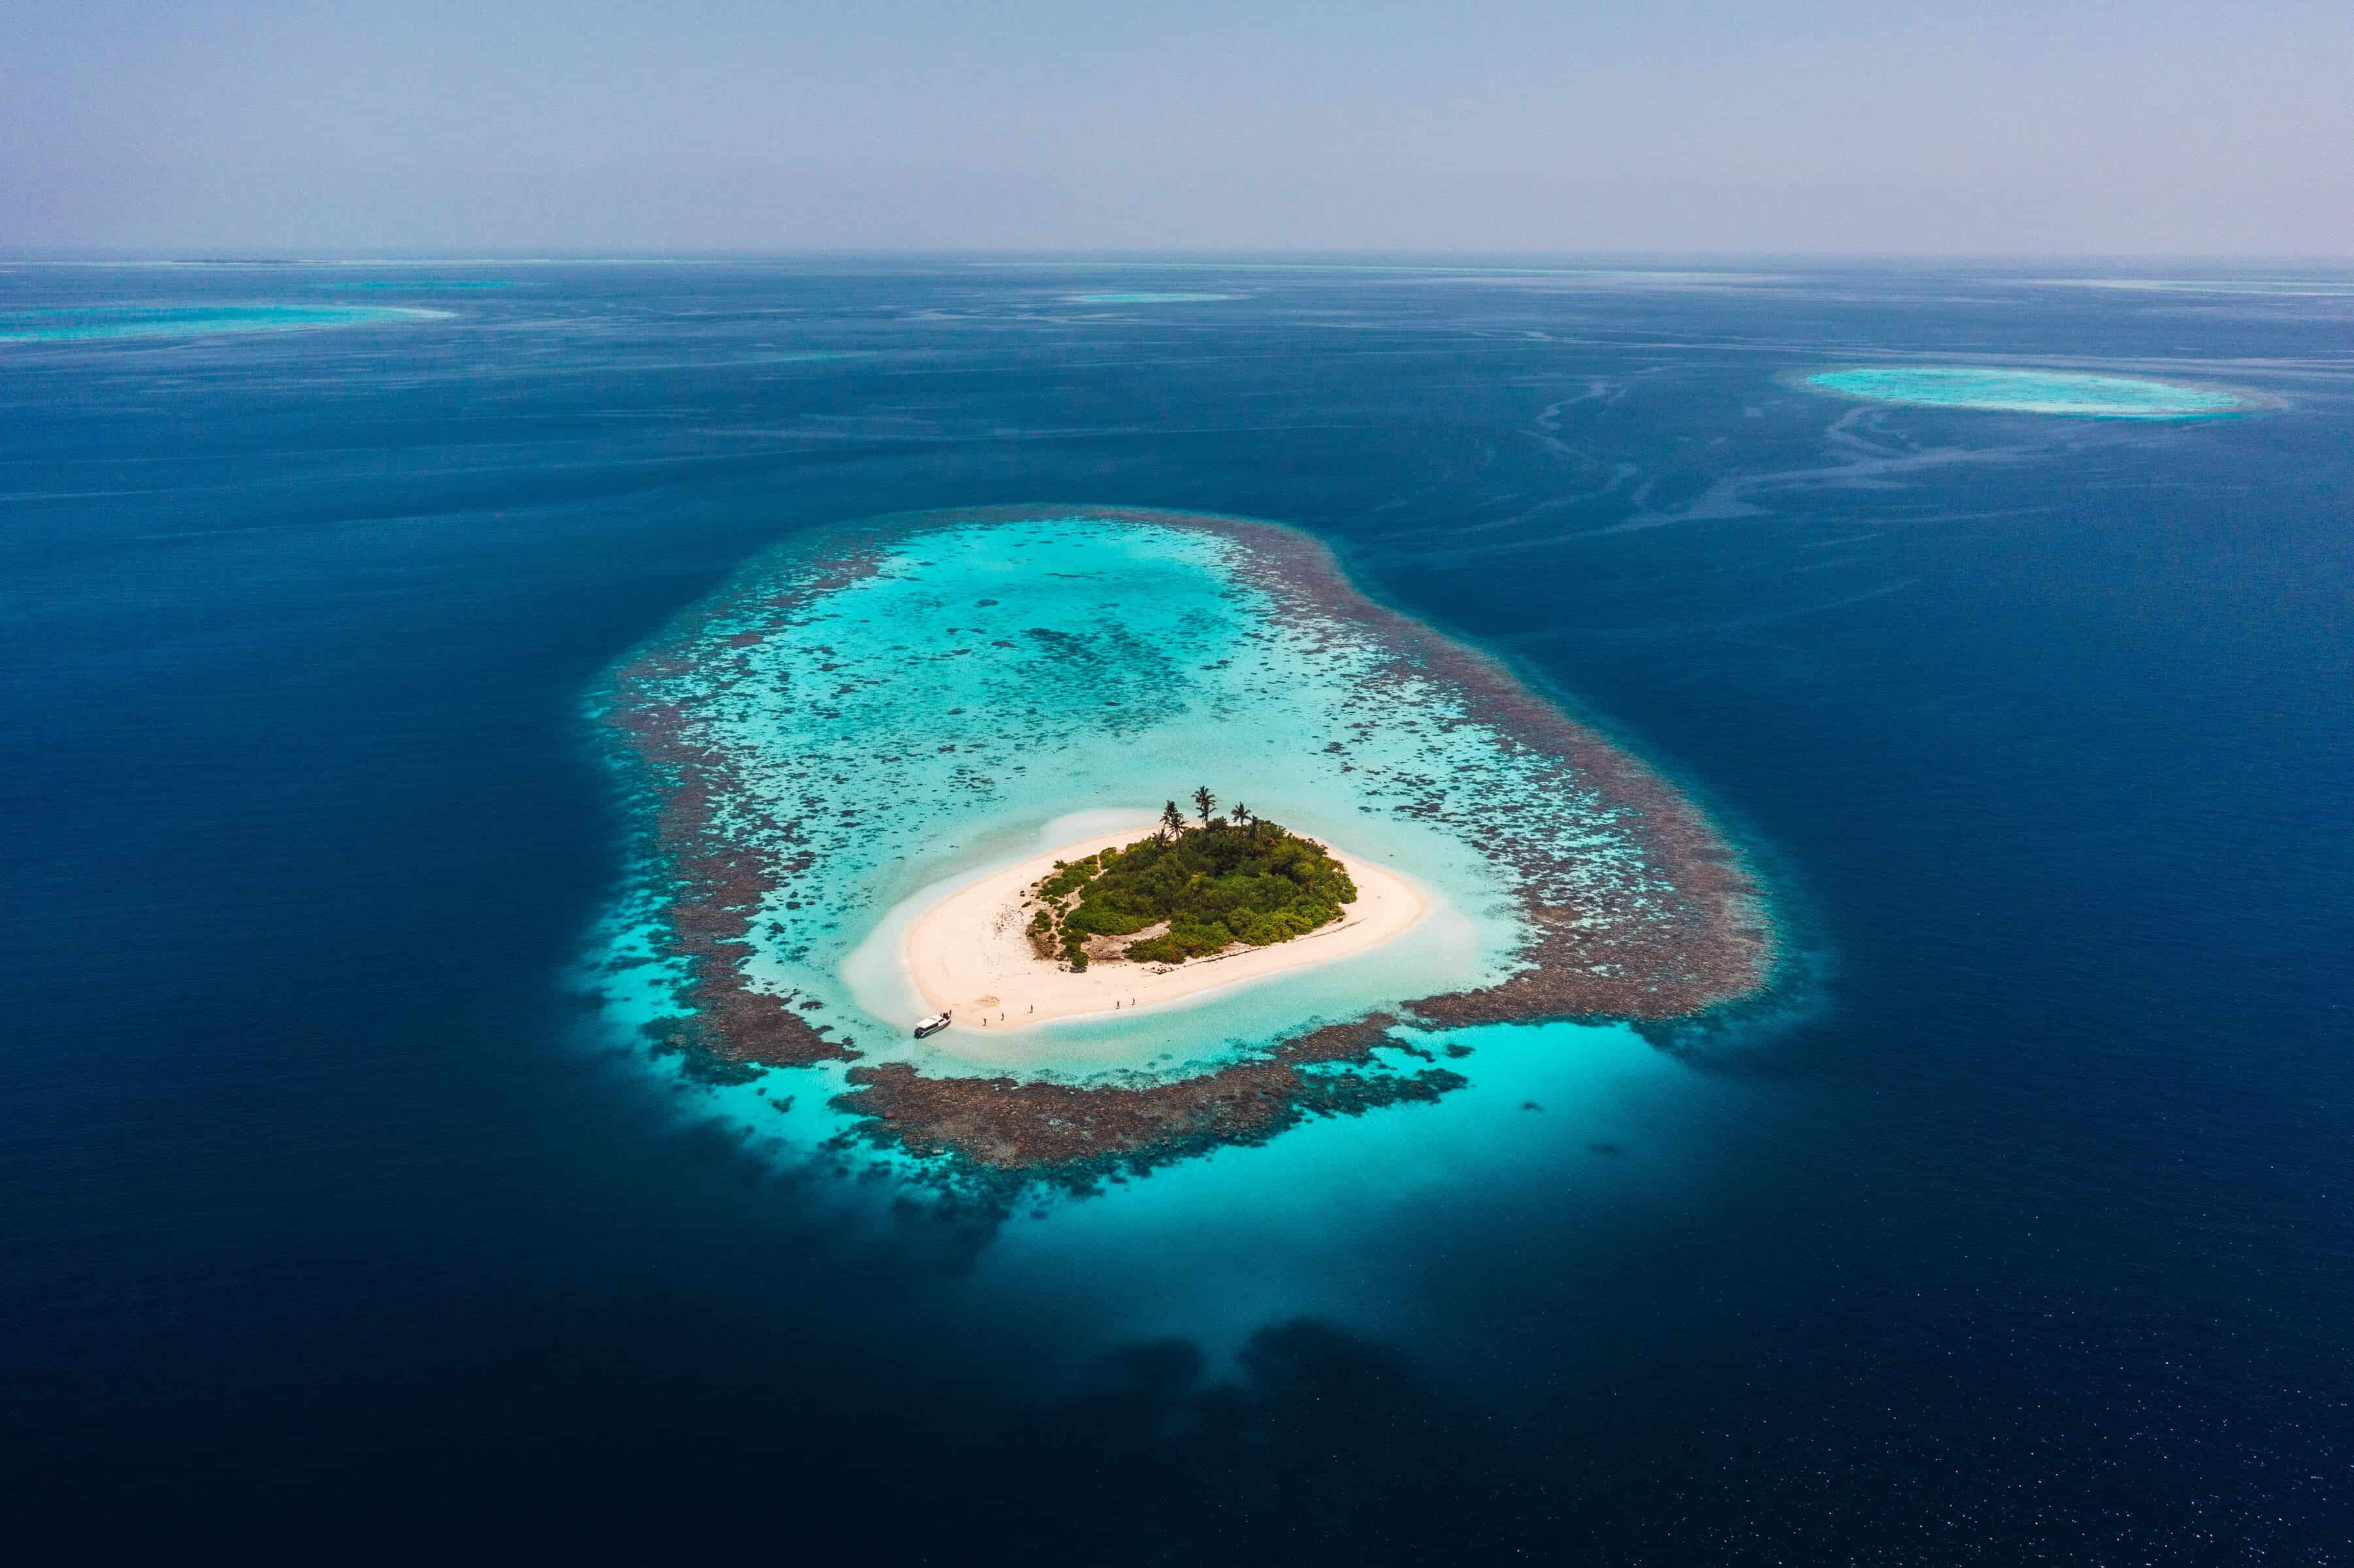 a picture of a deserted island